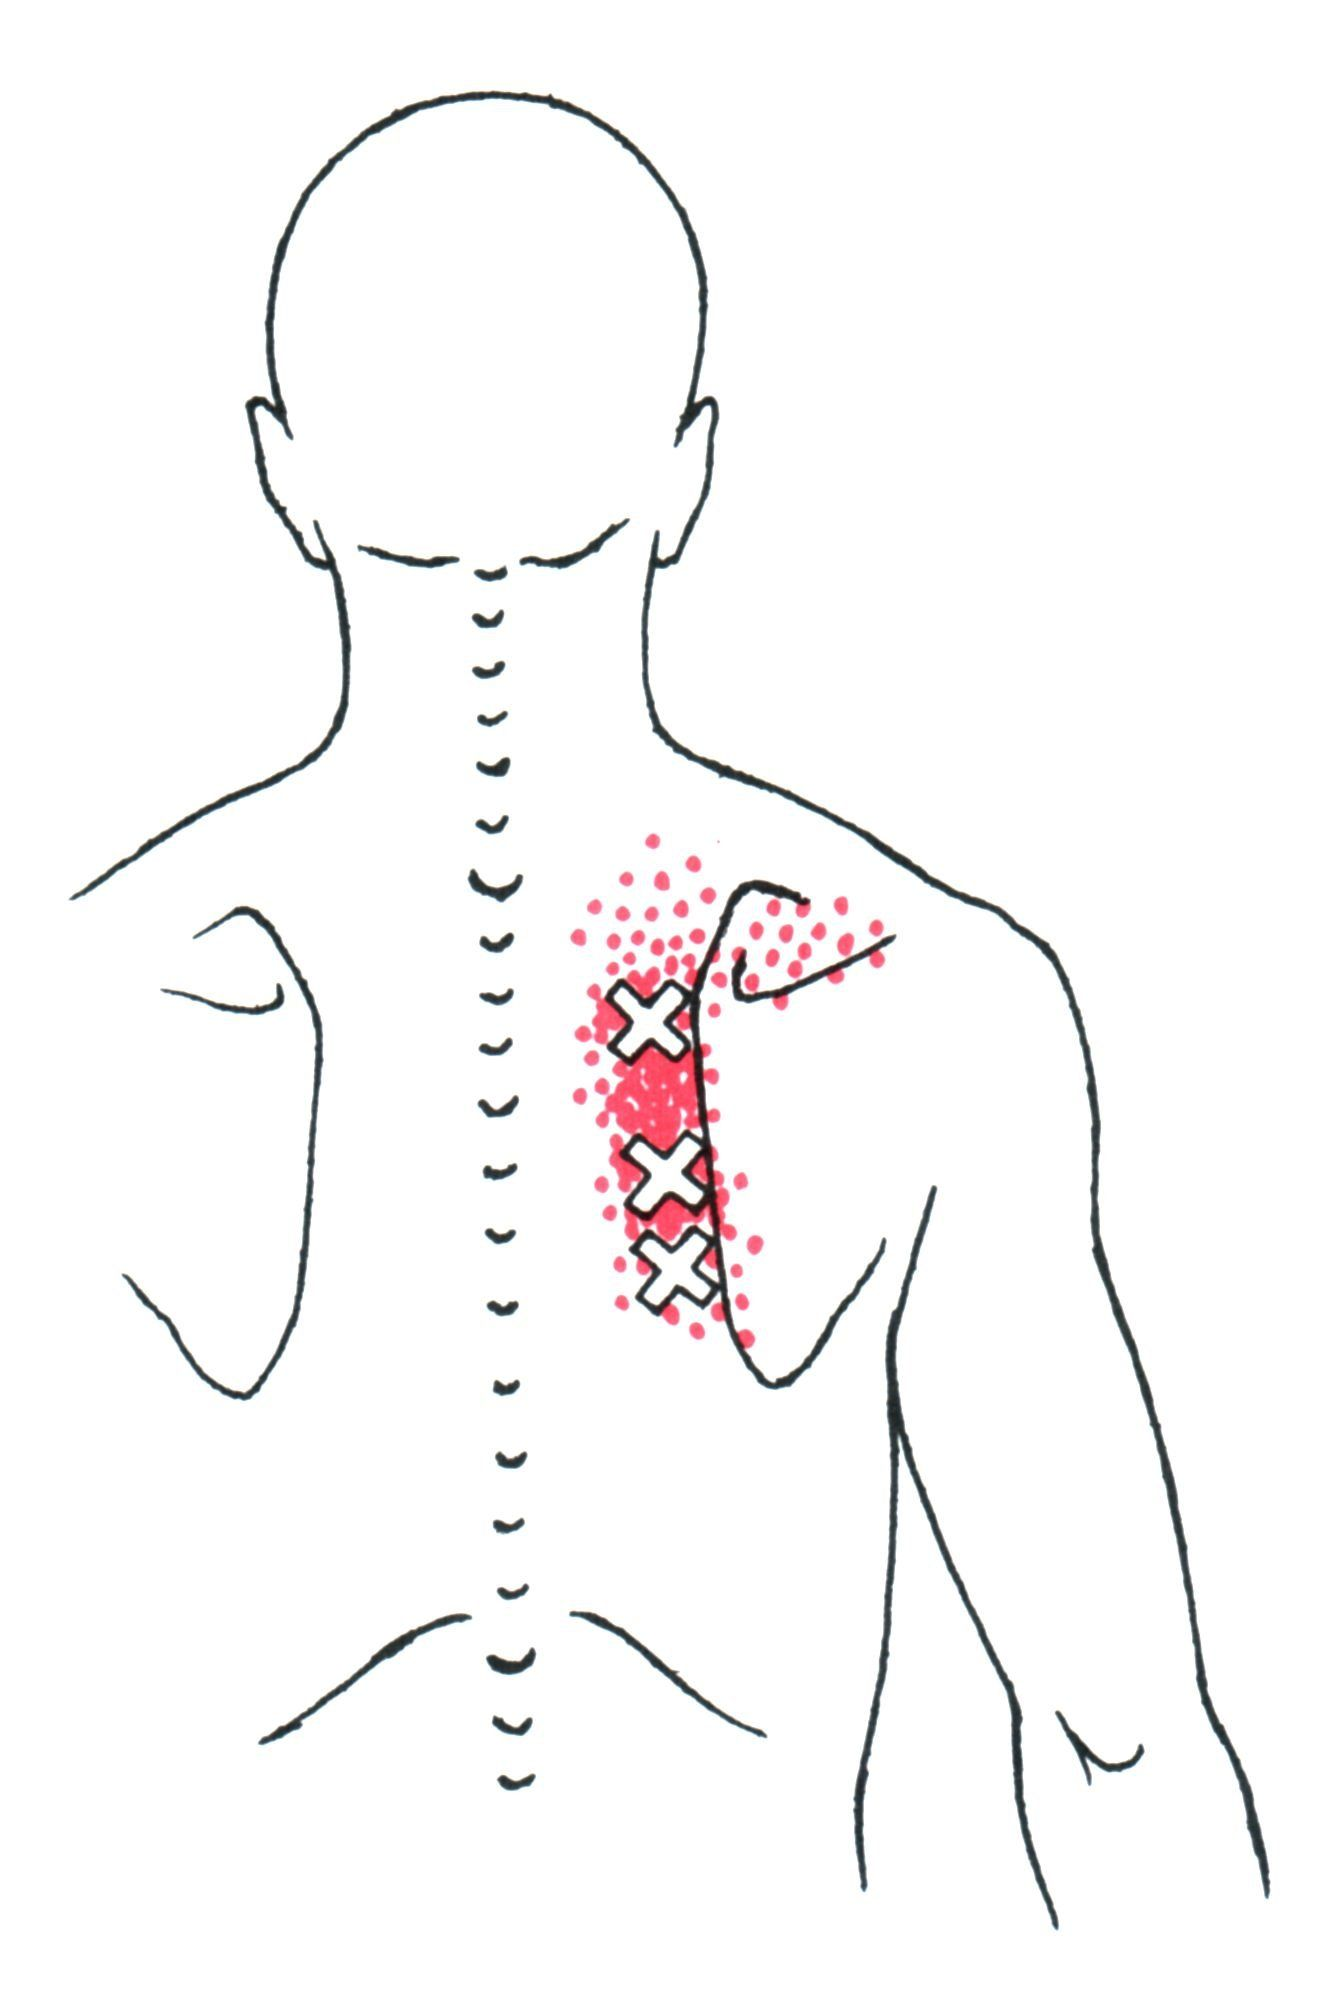 Rhomboid the trigger point referred pain guide the human rhomboid trigger point diagram pain patterns and related medical symptoms the myofascial pain pattern has pain locations that are displayed in red and pooptronica